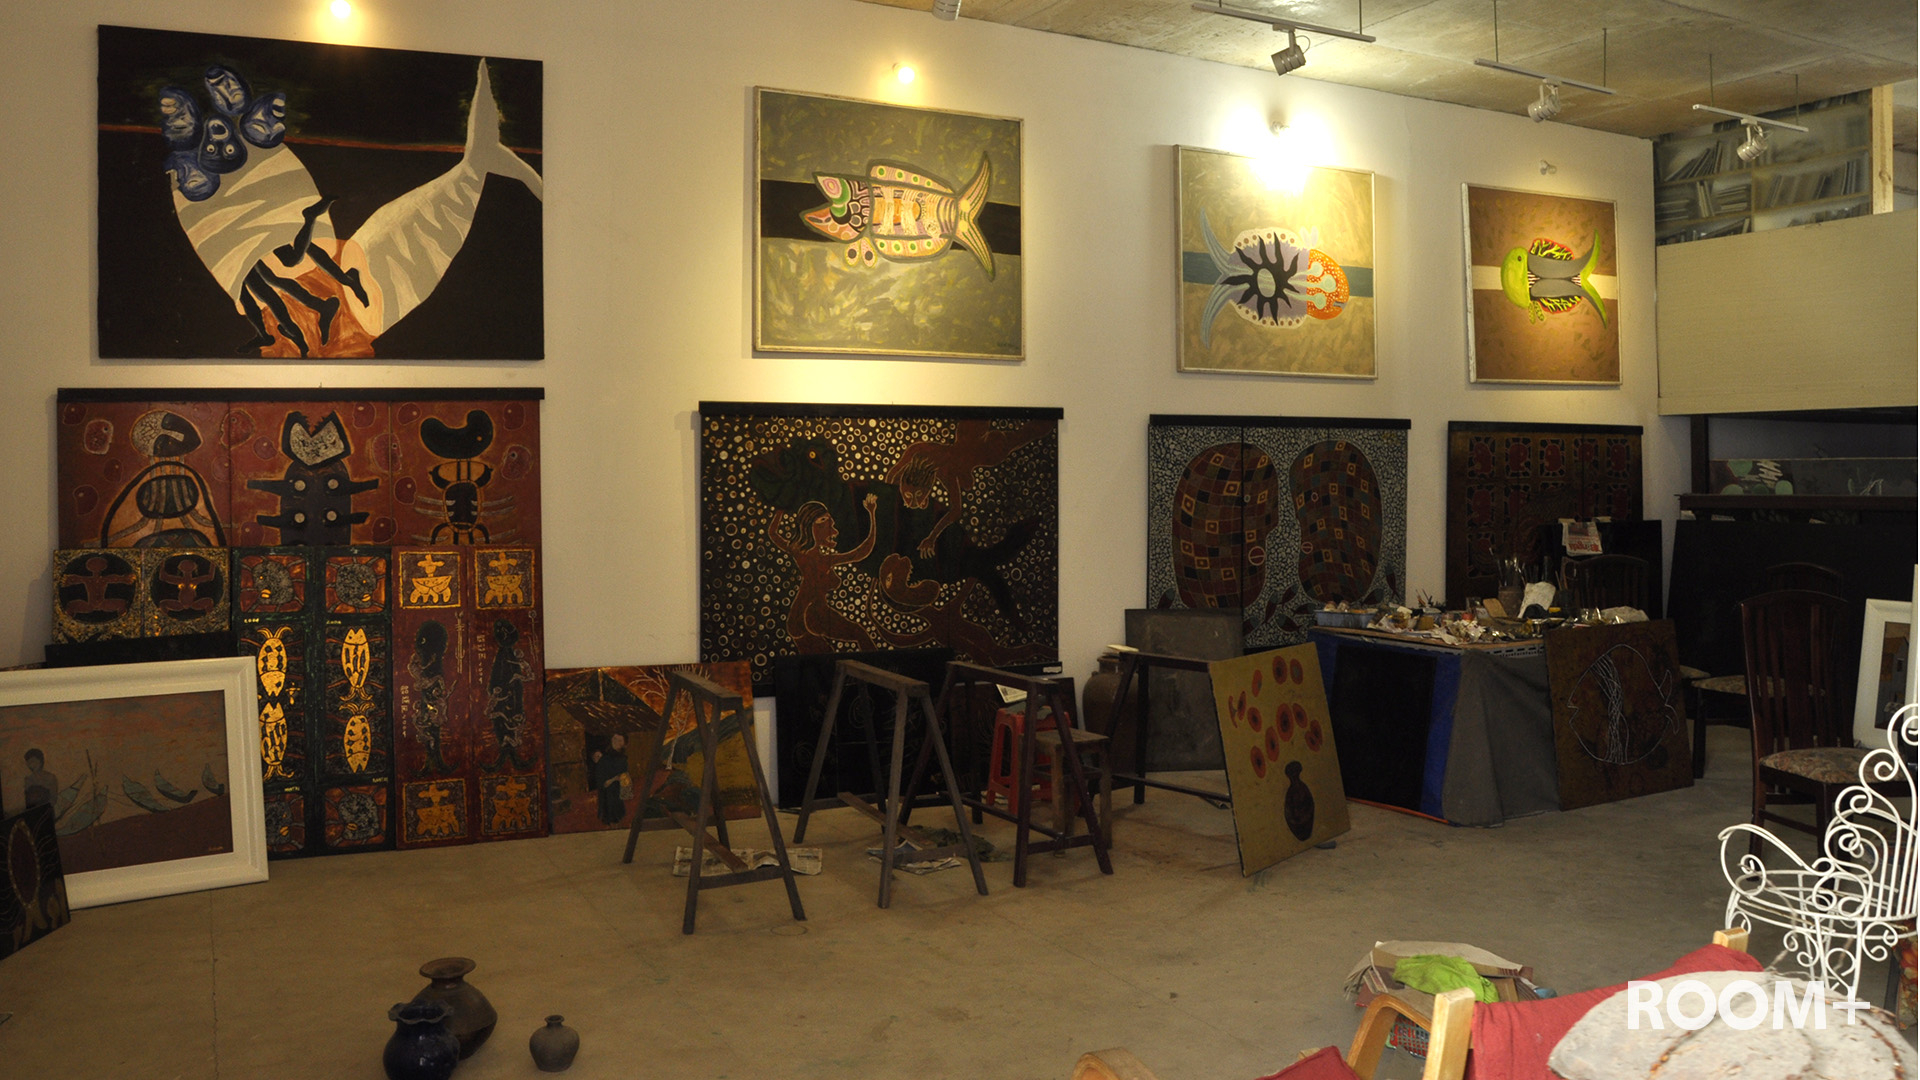 ROOM+ Gallery House (6)